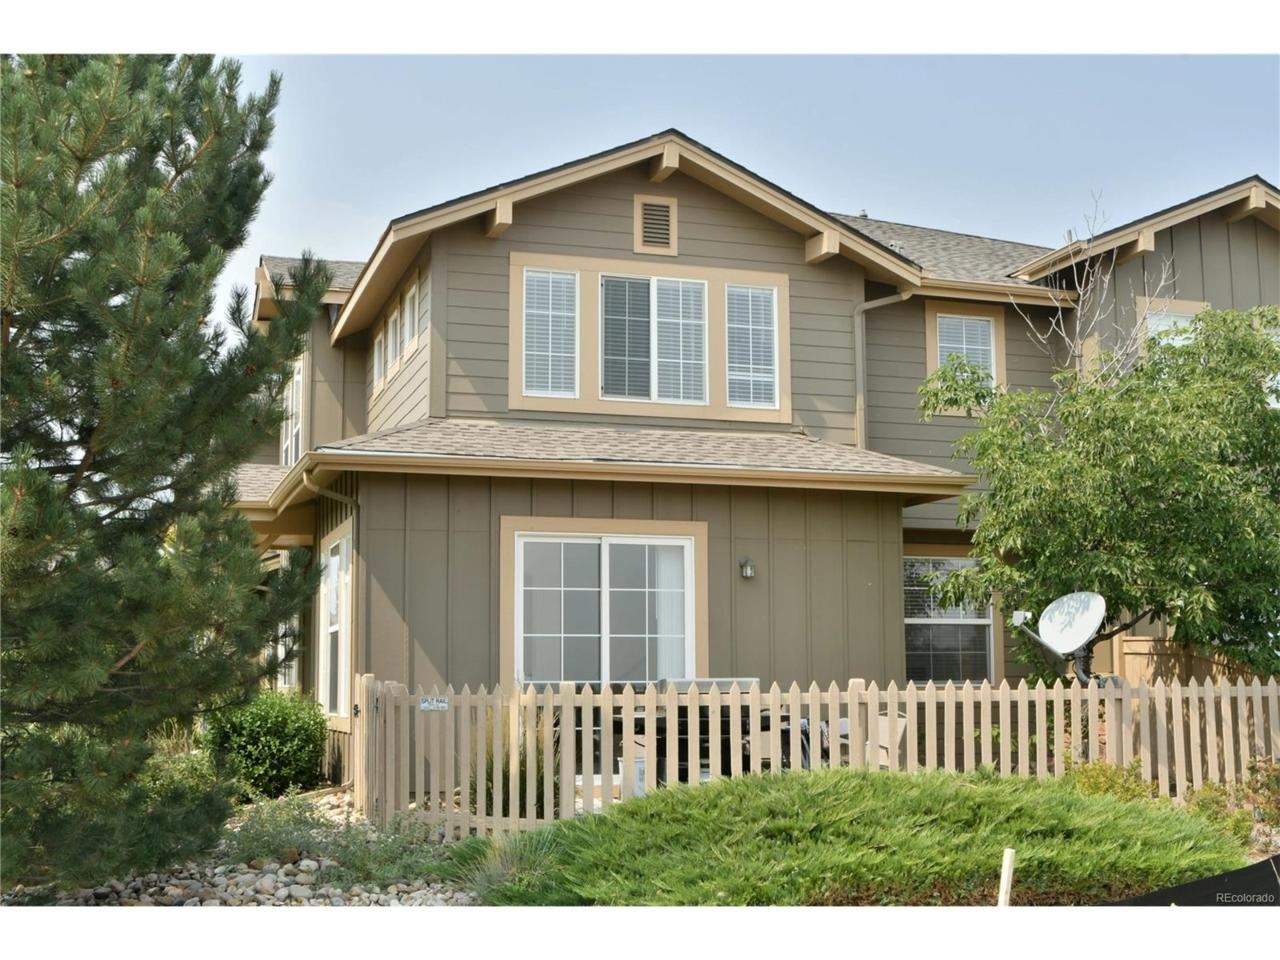 17943 E 104th Place A, Commerce City, CO 80022 (MLS #8511743) :: 8z Real Estate